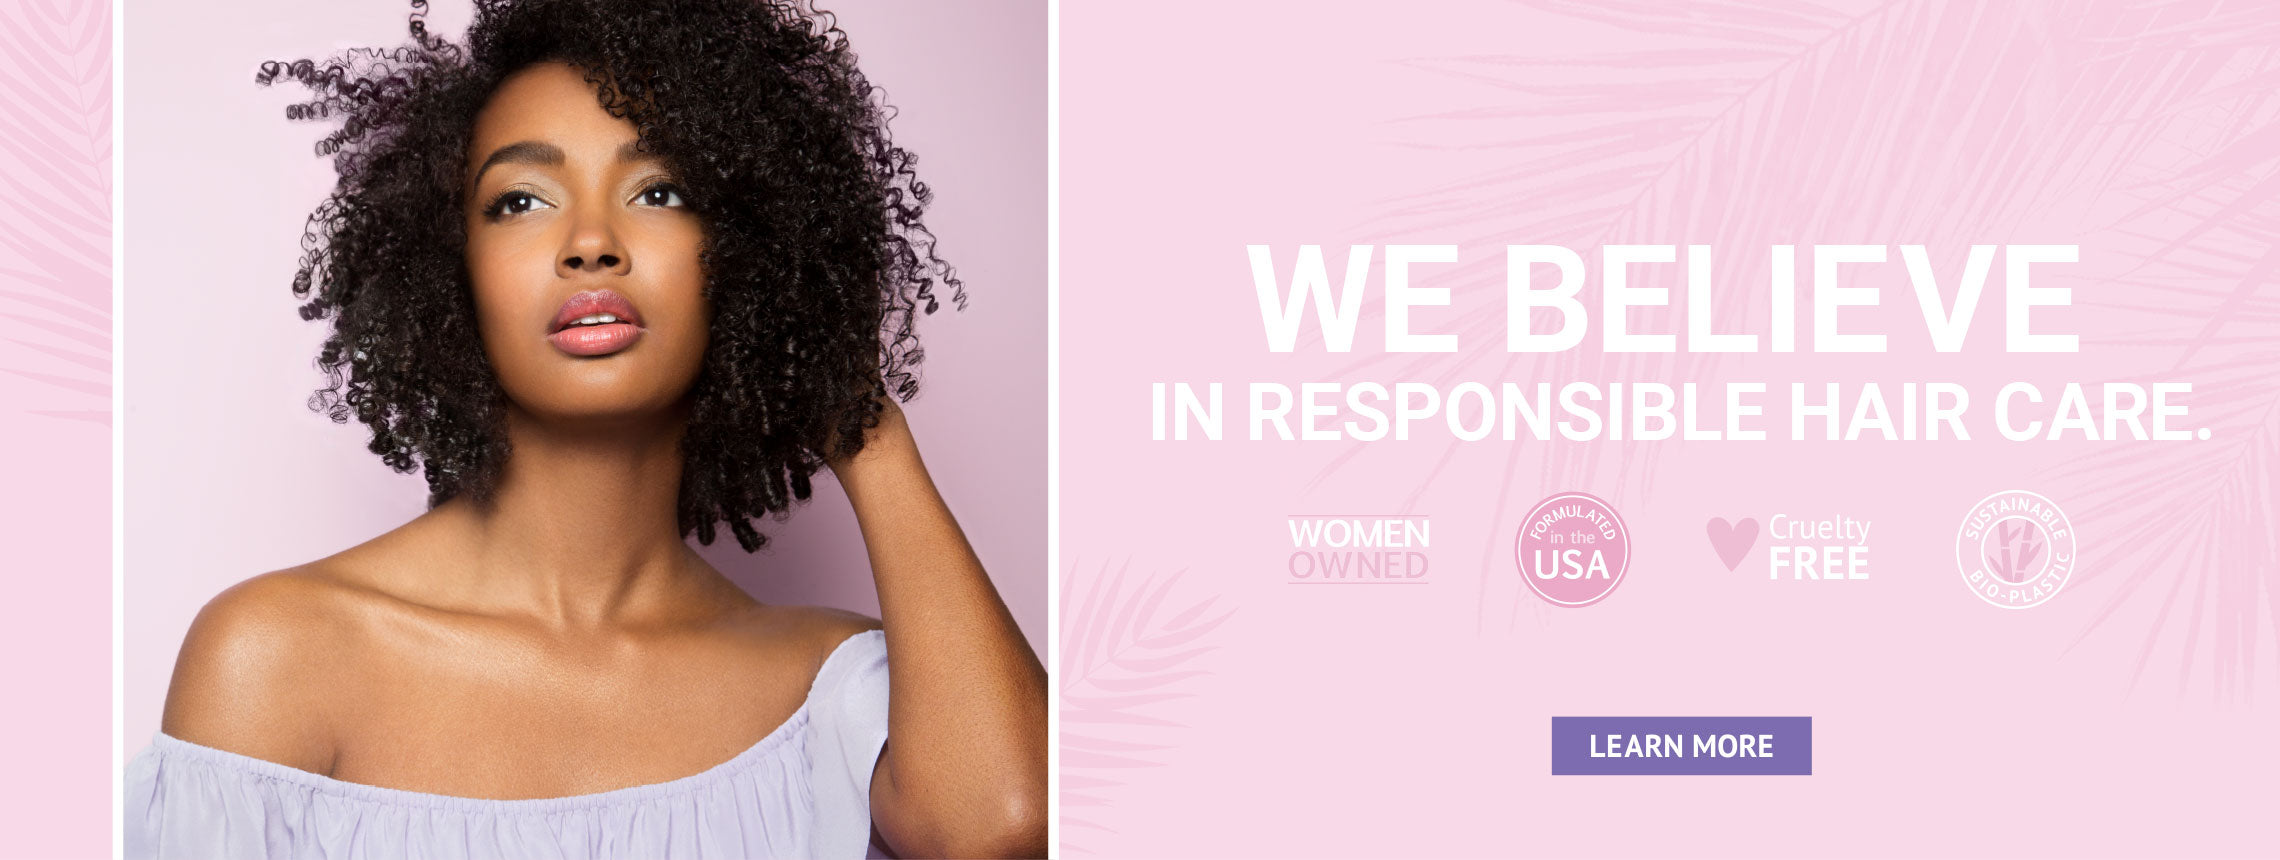 We belive in responsible hair care. We are women owned, formulated in the USA, cruelty free and we use sustainable bio-plastic. Learn more.